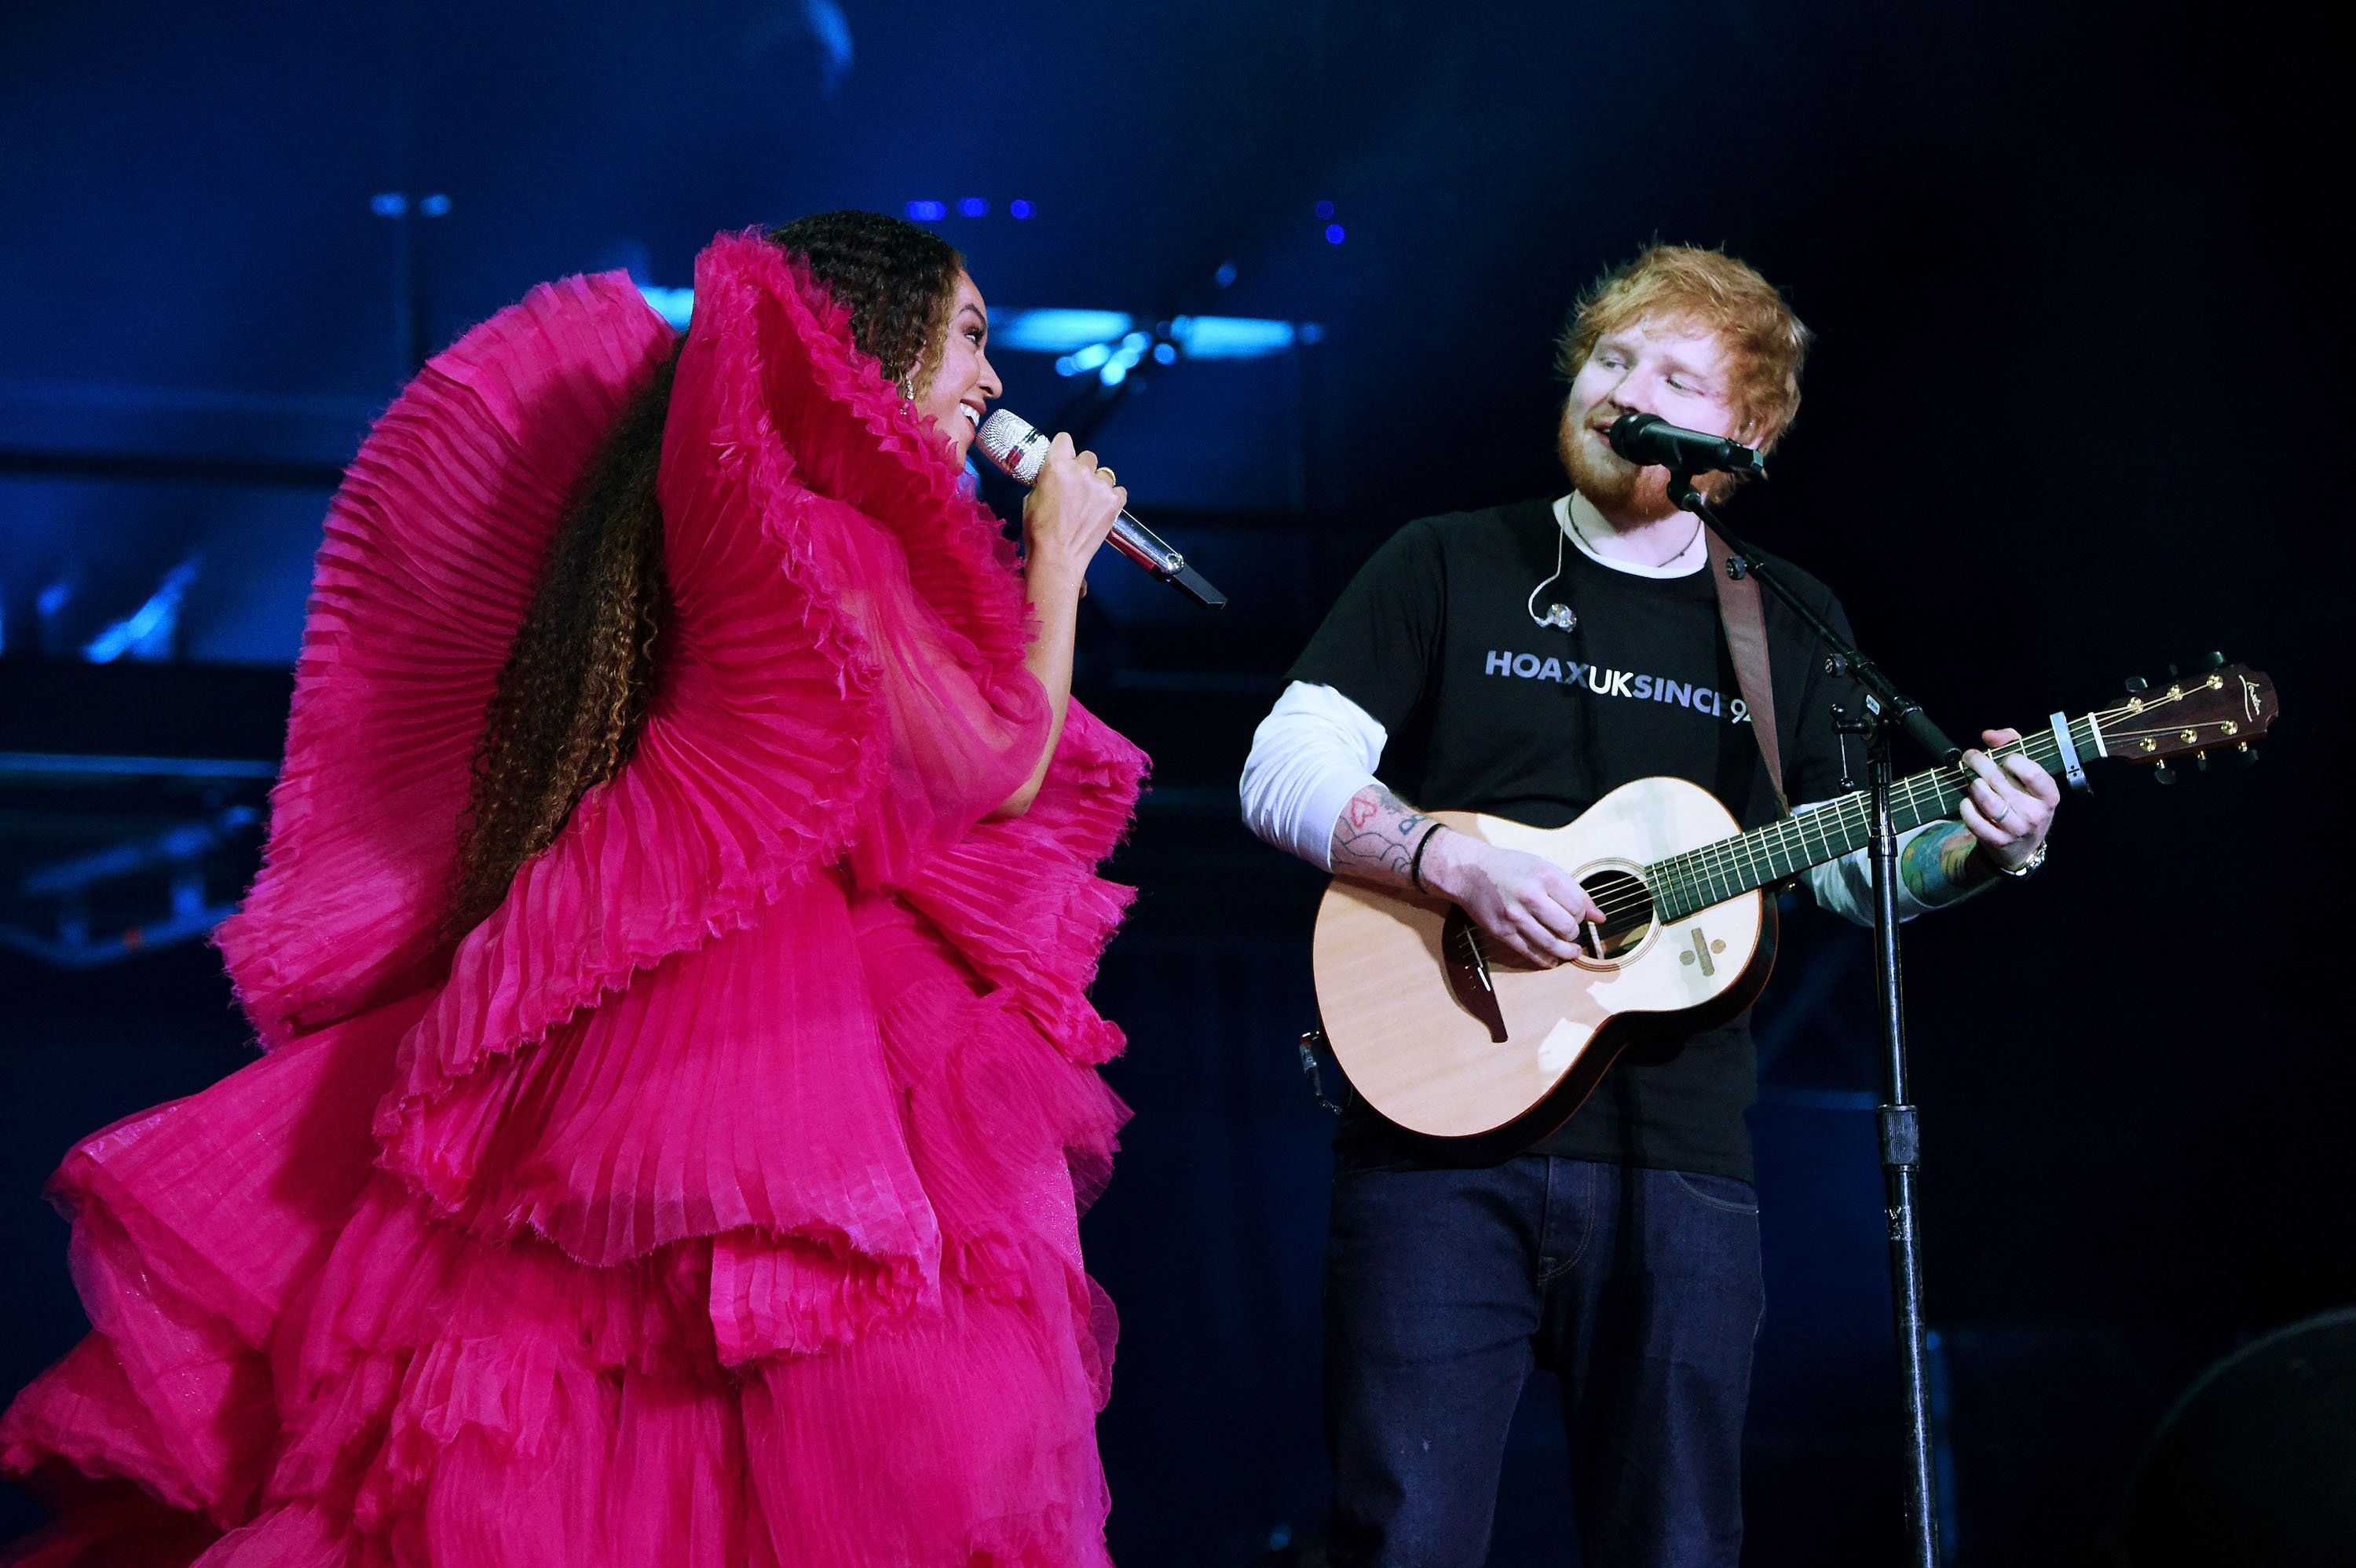 JOHANNESBURG, SOUTH AFRICA - DECEMBER 02: Beyonce and Ed Sheeran perform during the Global Citizen Festival: Mandela 100 at FNB Stadium on December 2, 2018 in Johannesburg, South Africa.  (Photo by Kevin Mazur/Getty Images for Global Citizen Festival: Mandela 100)